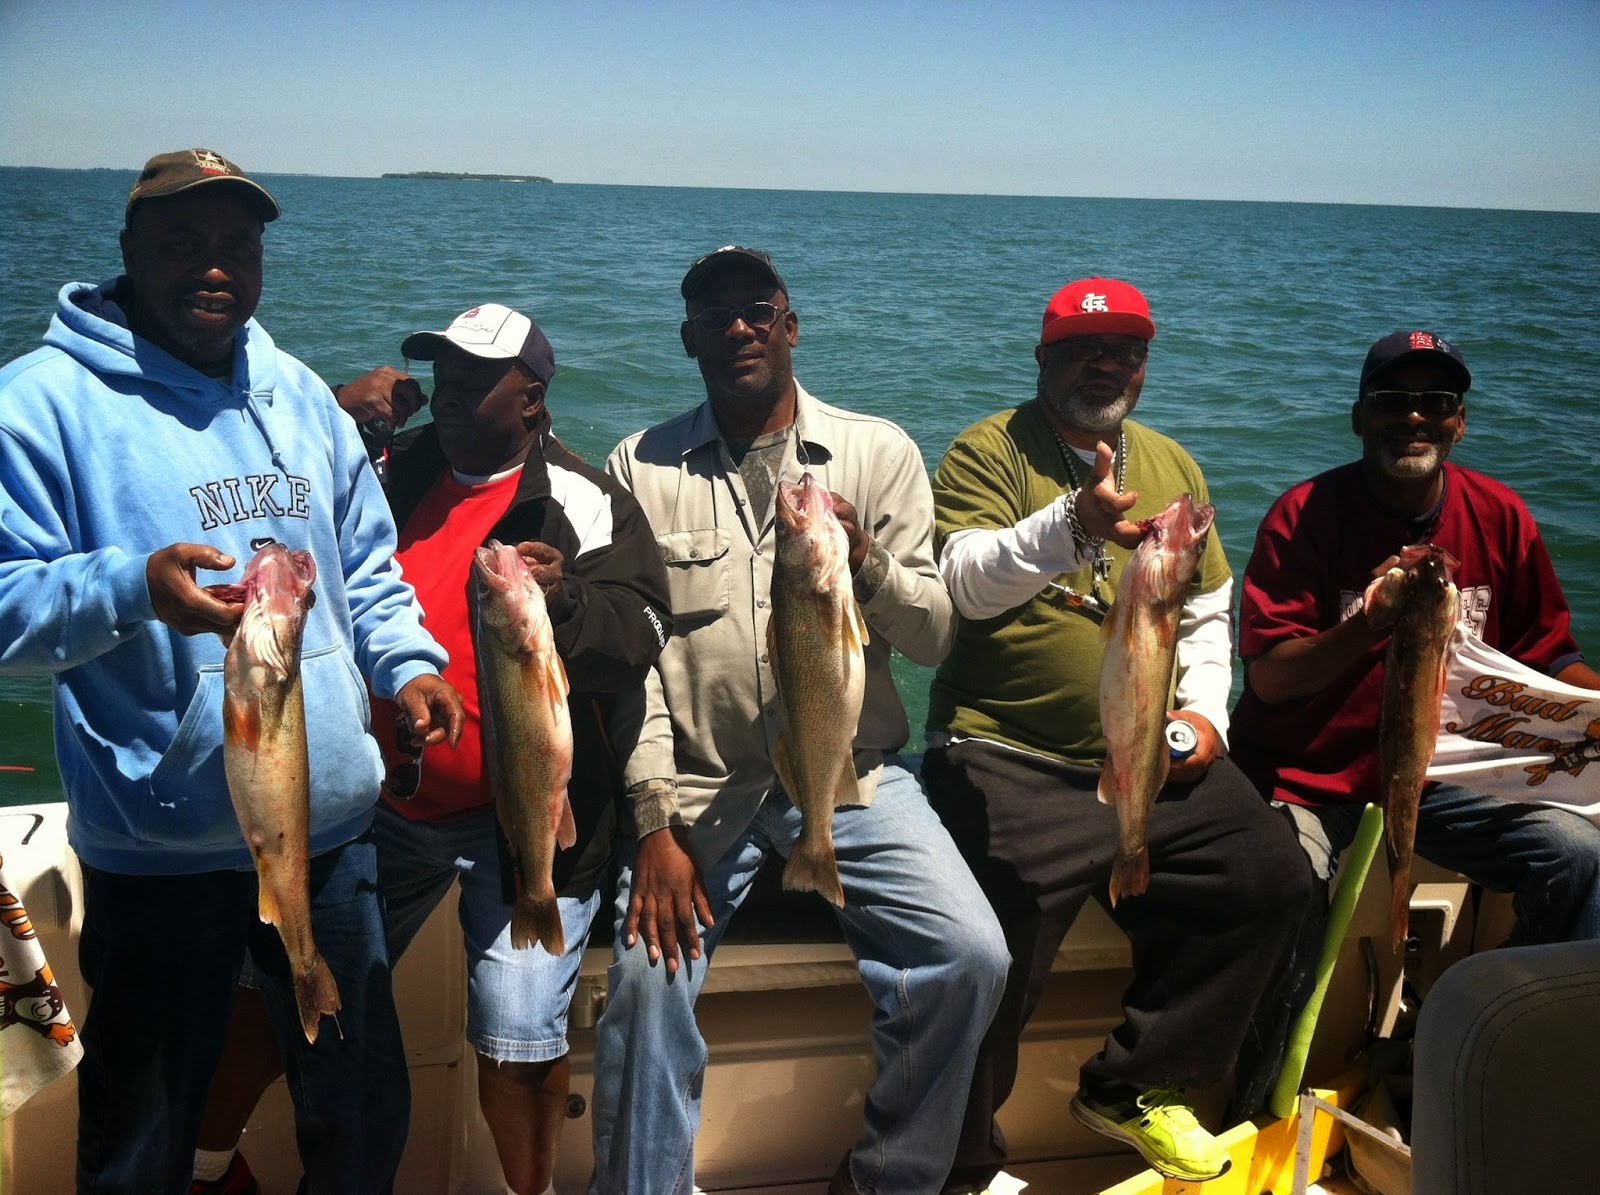 Lake erie walleye fishing reports west of middle island 6 14 for Lake erie walleye fishing report